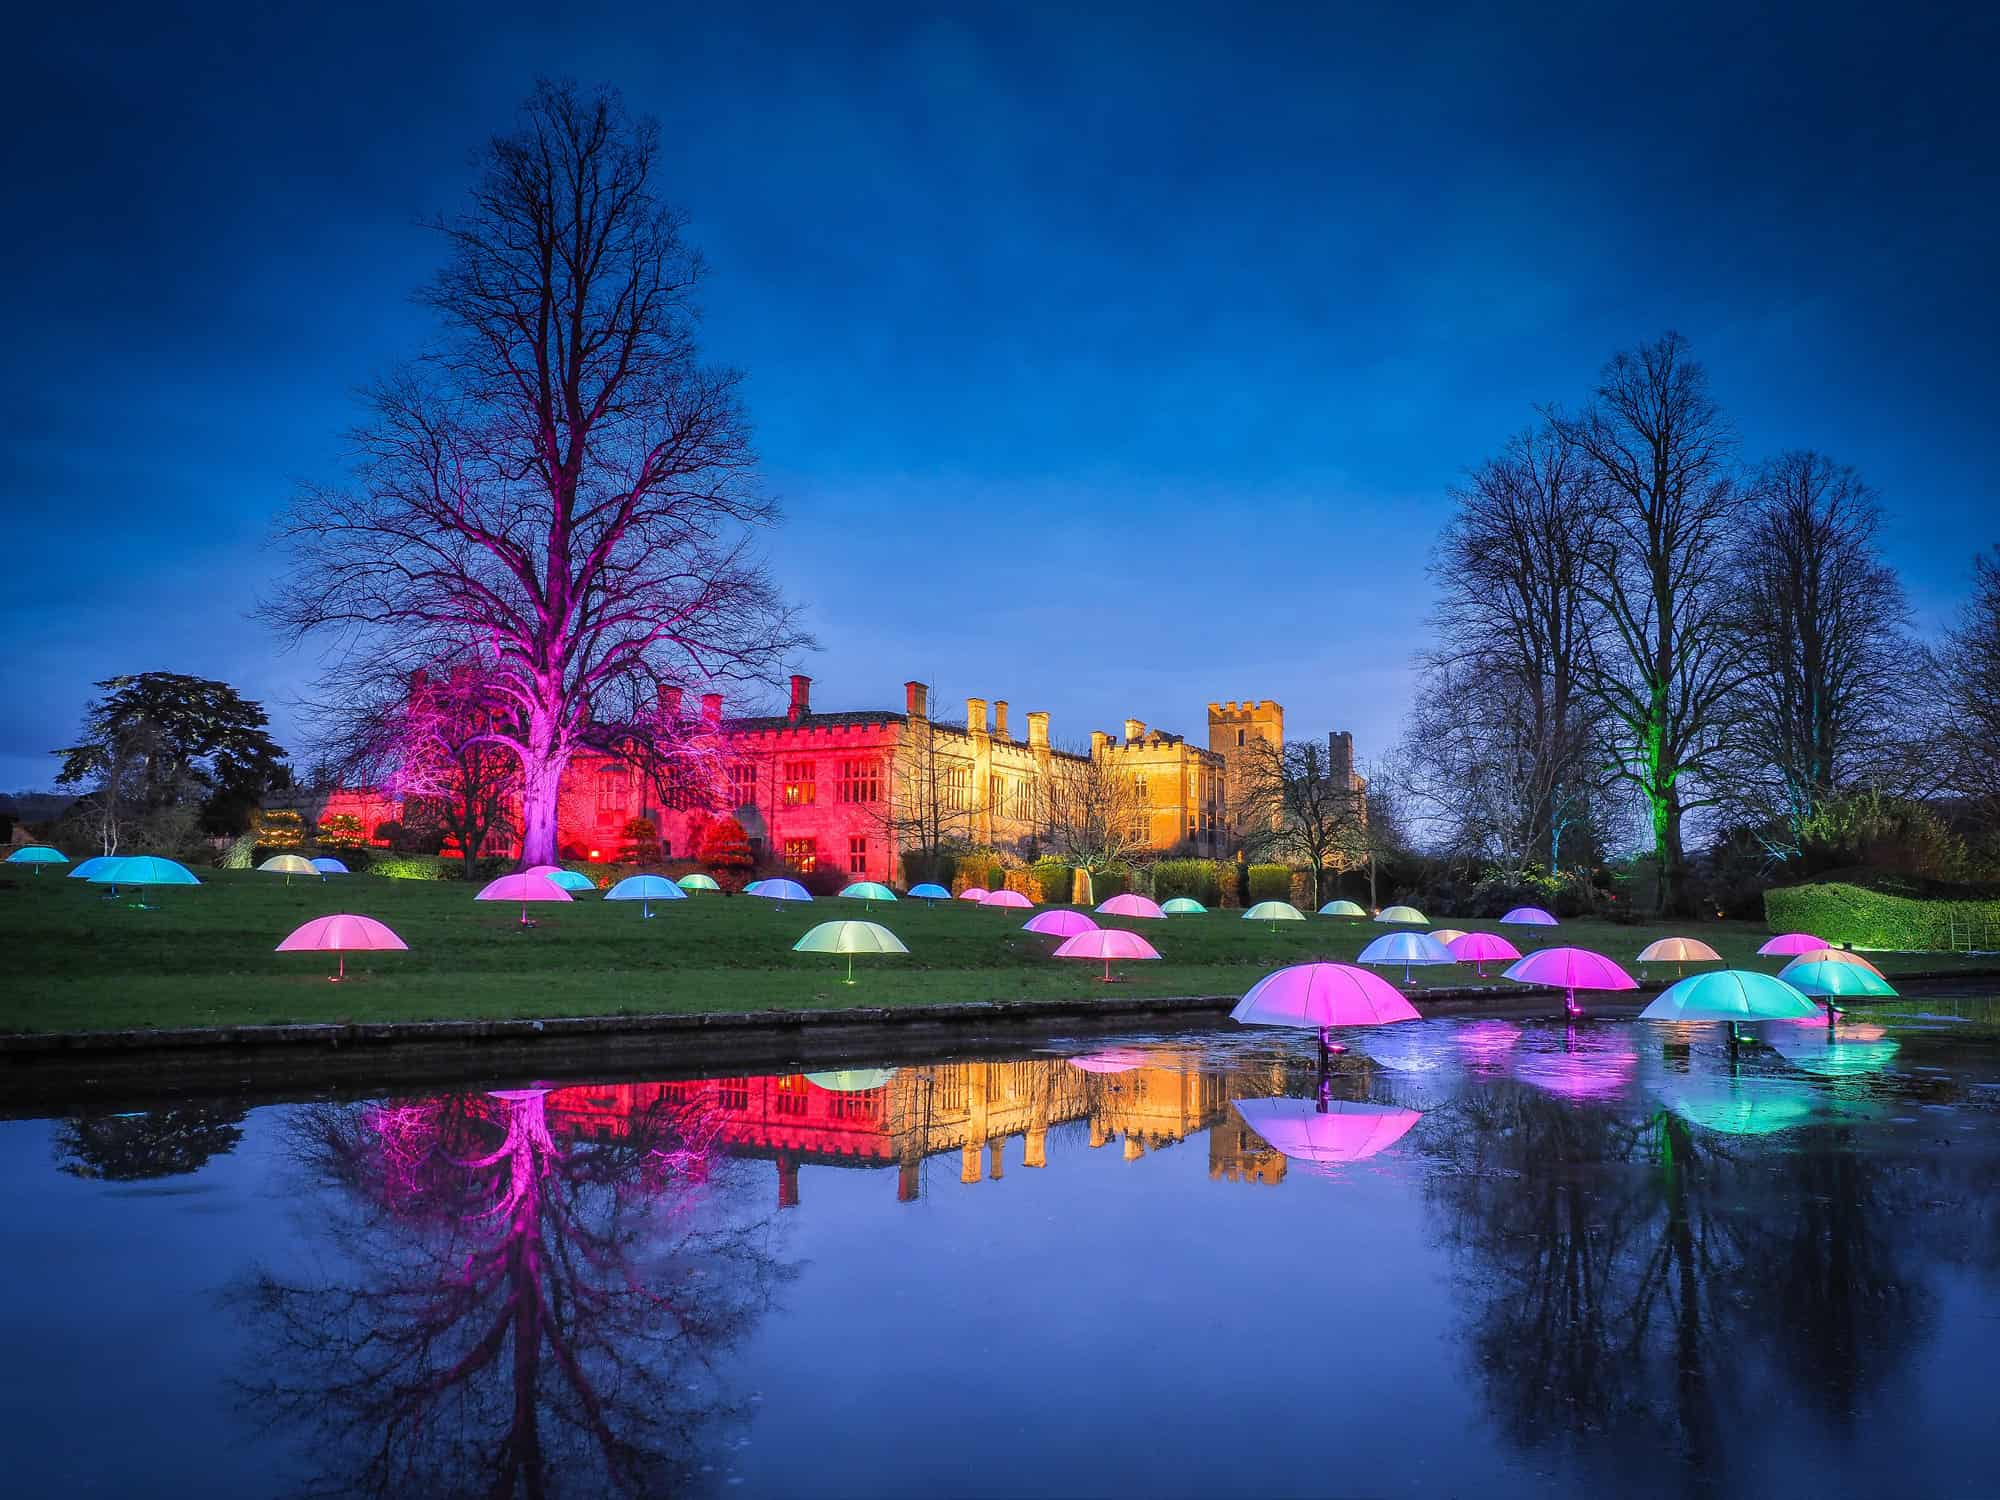 2017 Sudeley Castle Spectacle of Light Photo Gallery 35